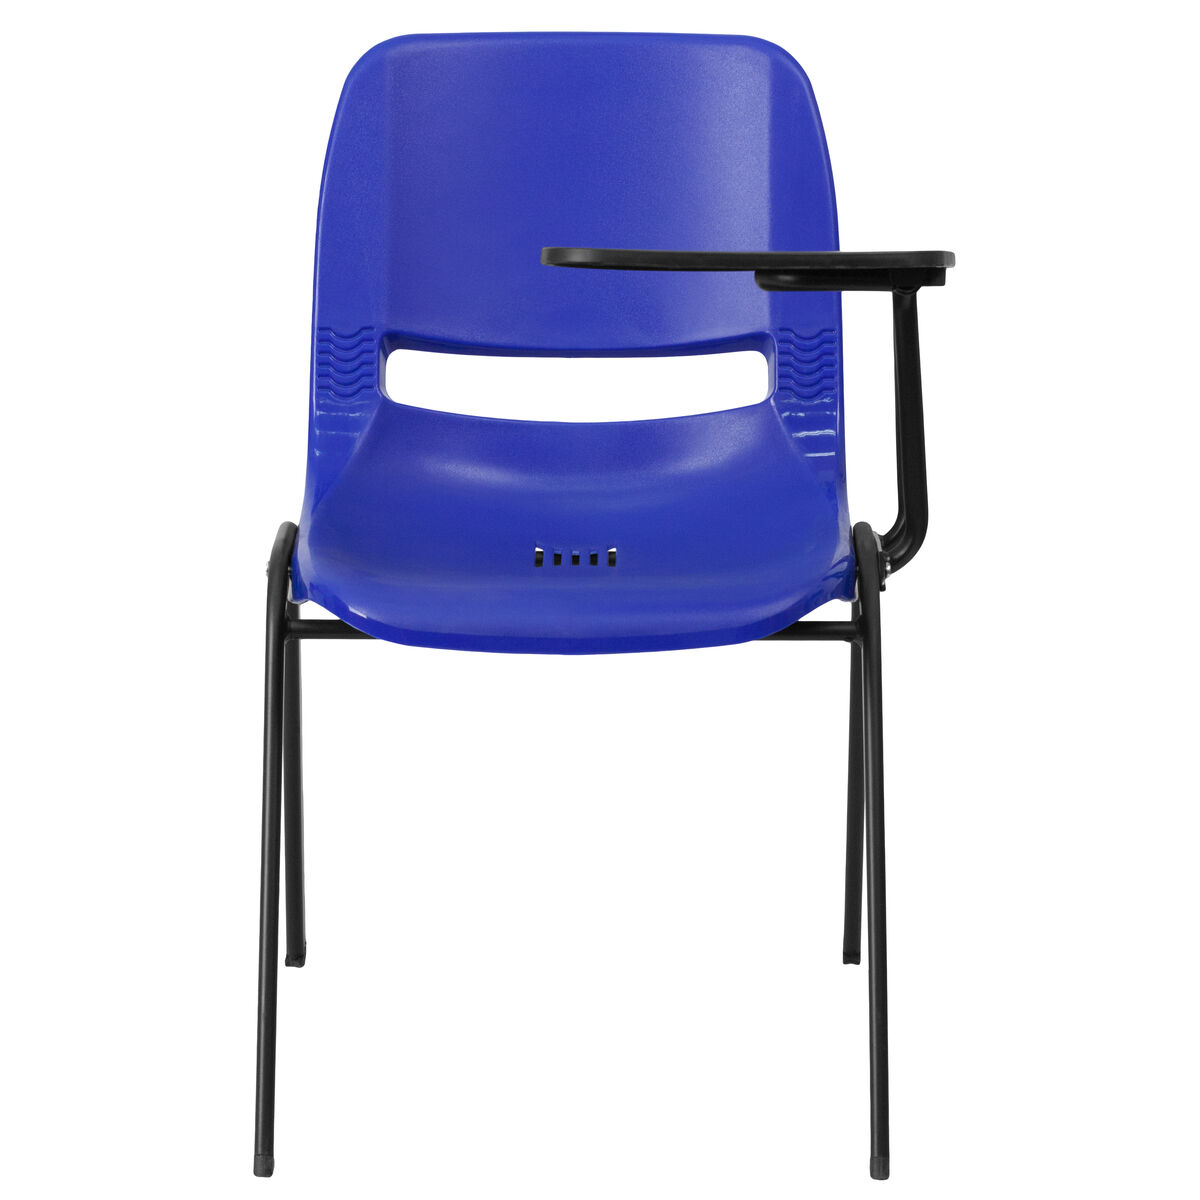 Phenomenal Blue Ergonomic Shell Chair With Left Handed Flip Up Tablet Arm Pdpeps Interior Chair Design Pdpepsorg